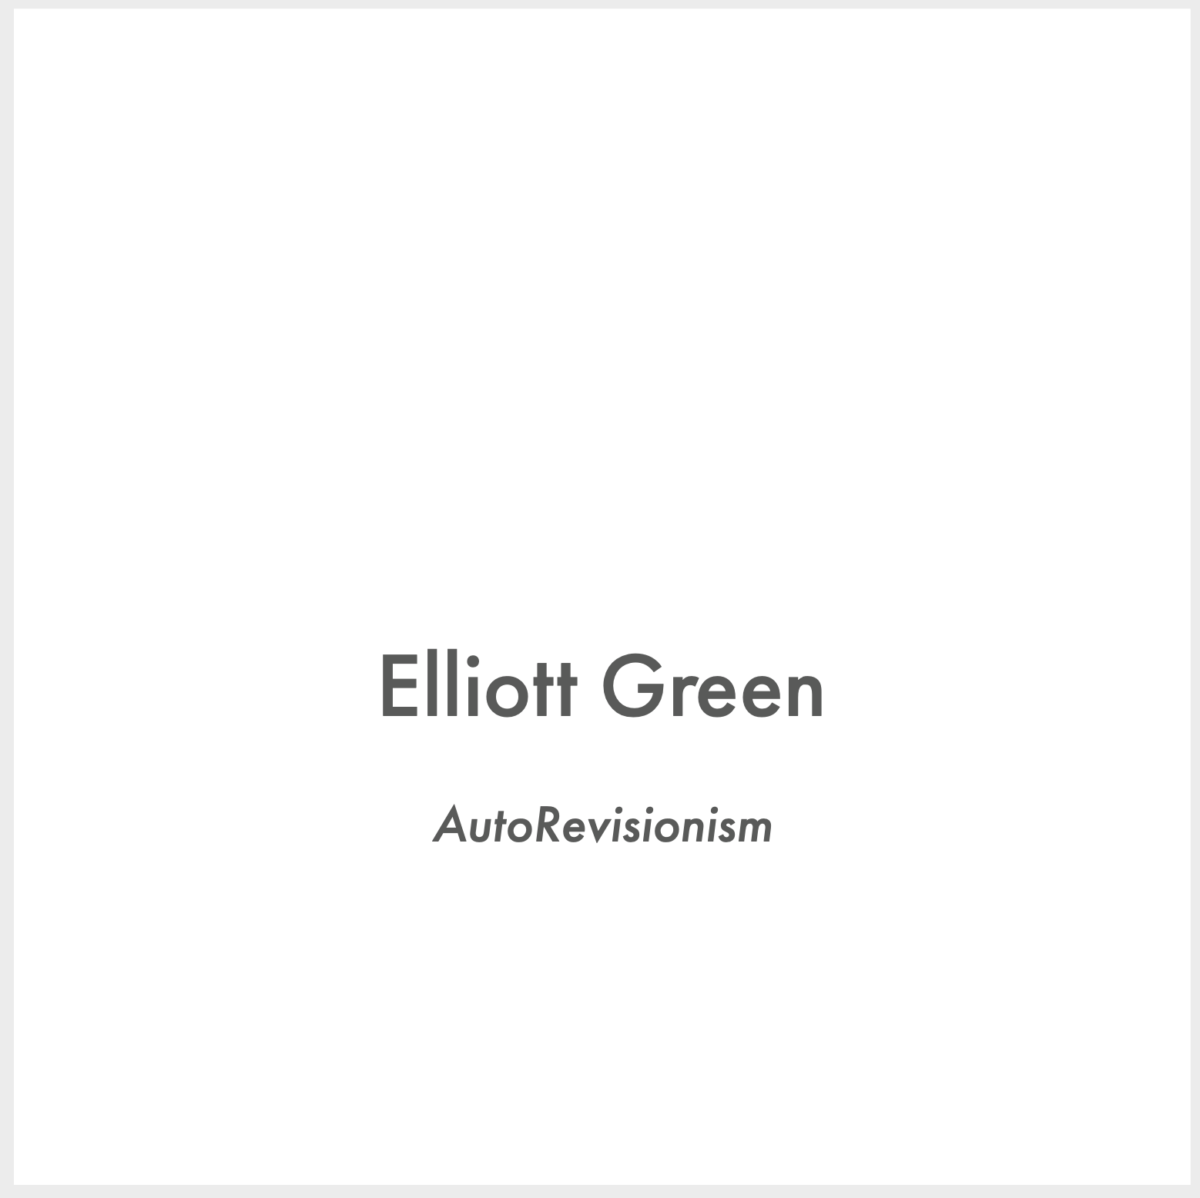 This is the cover of the Elliott Green catalog for AutoRevisionism and exhibition at Pamela Salisbury Gallery